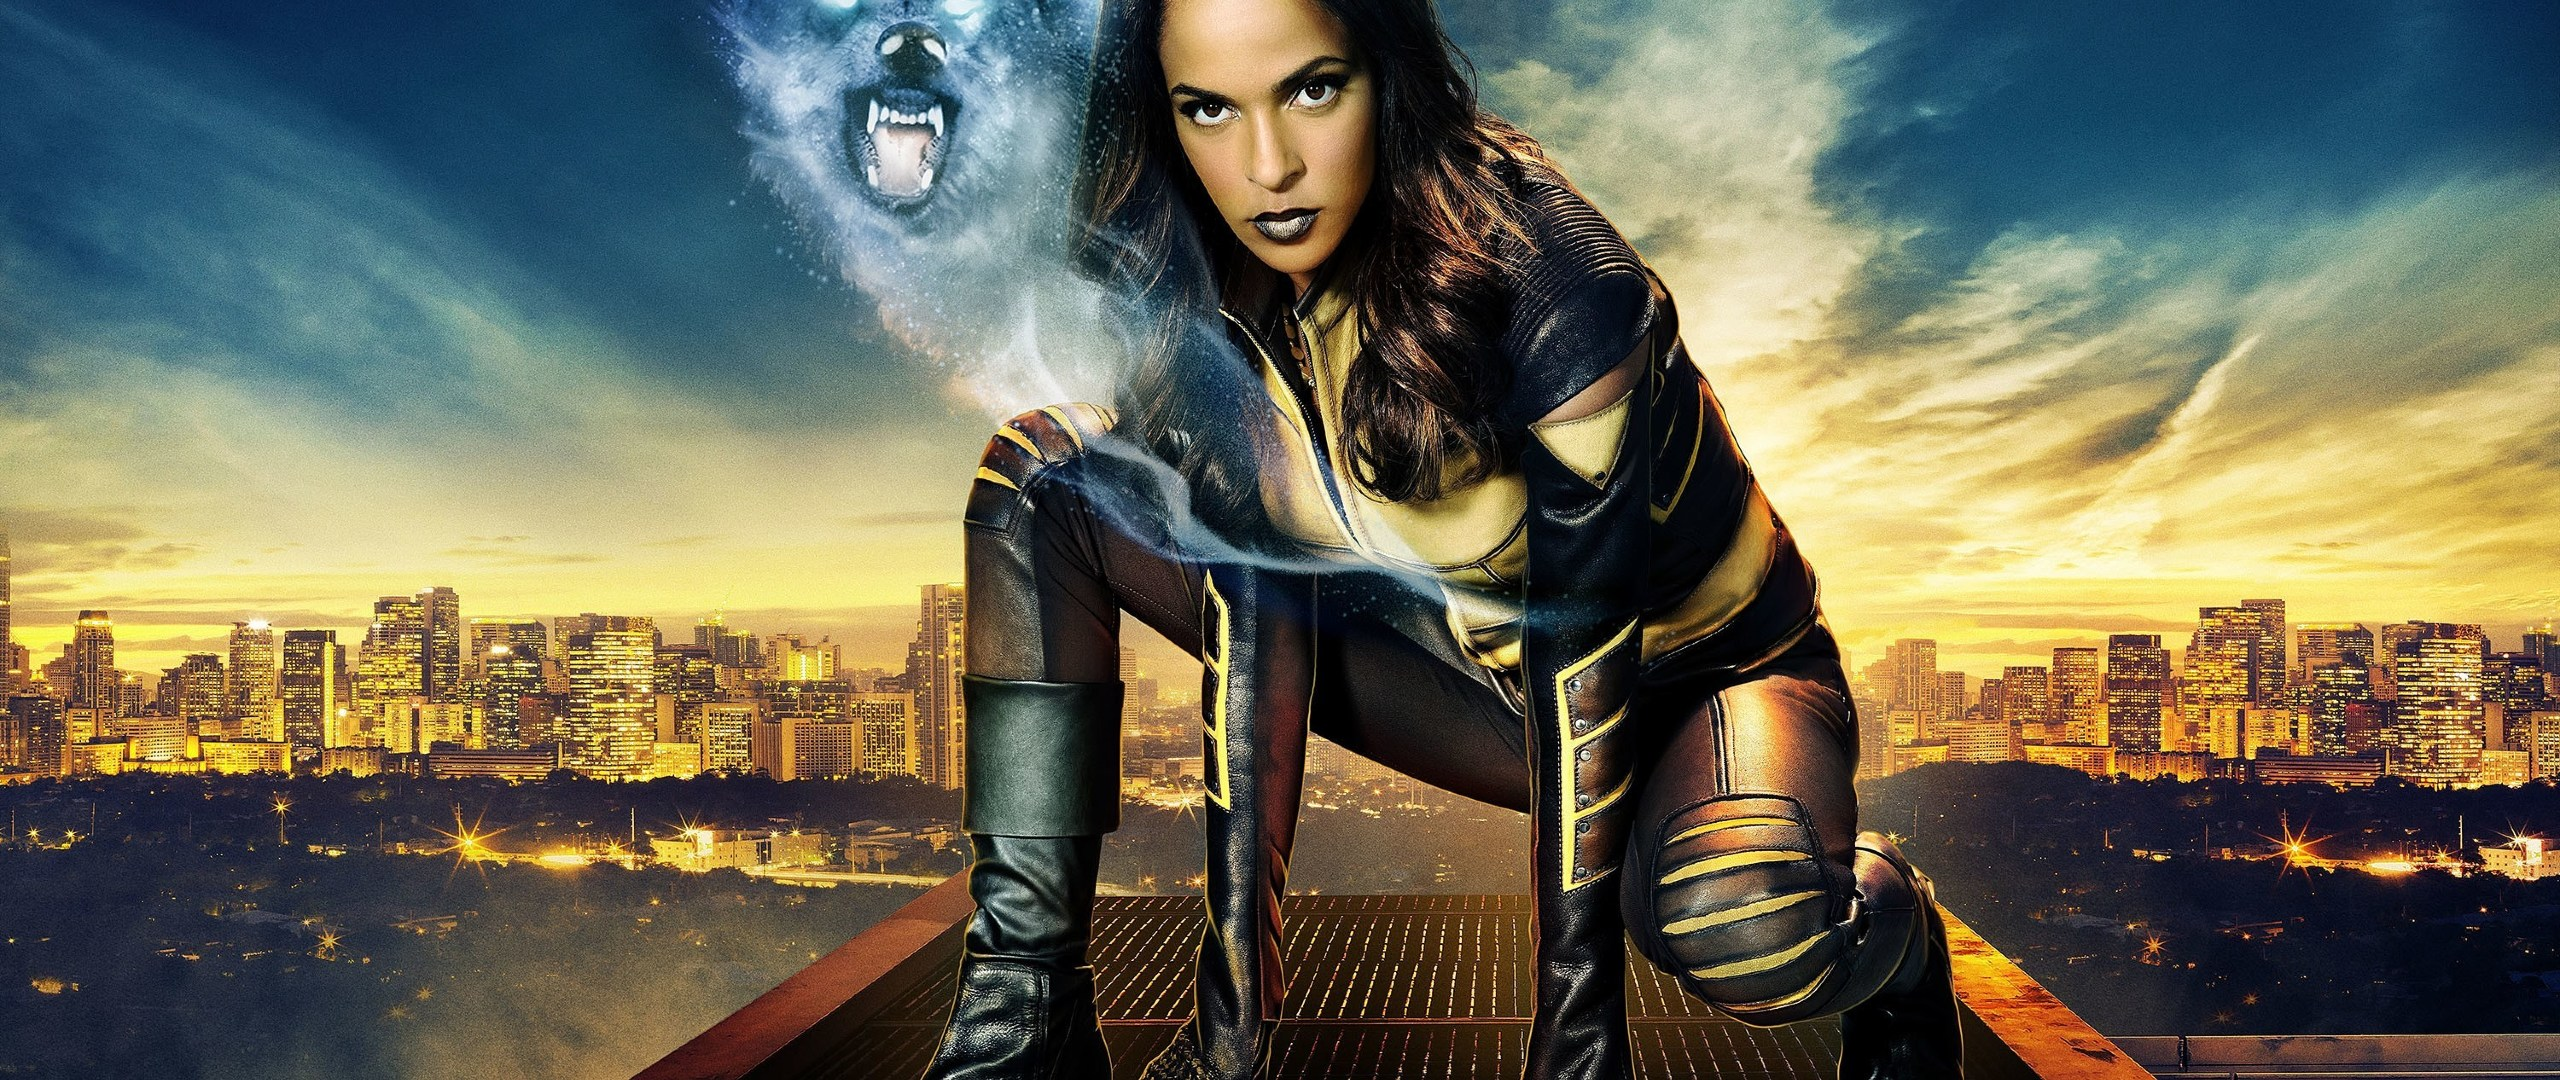 Dc S Legends Of Tomorrow Wallpaper And Background Image: Download Vixen From Dc's Legends Of Tomorrow 1280x720